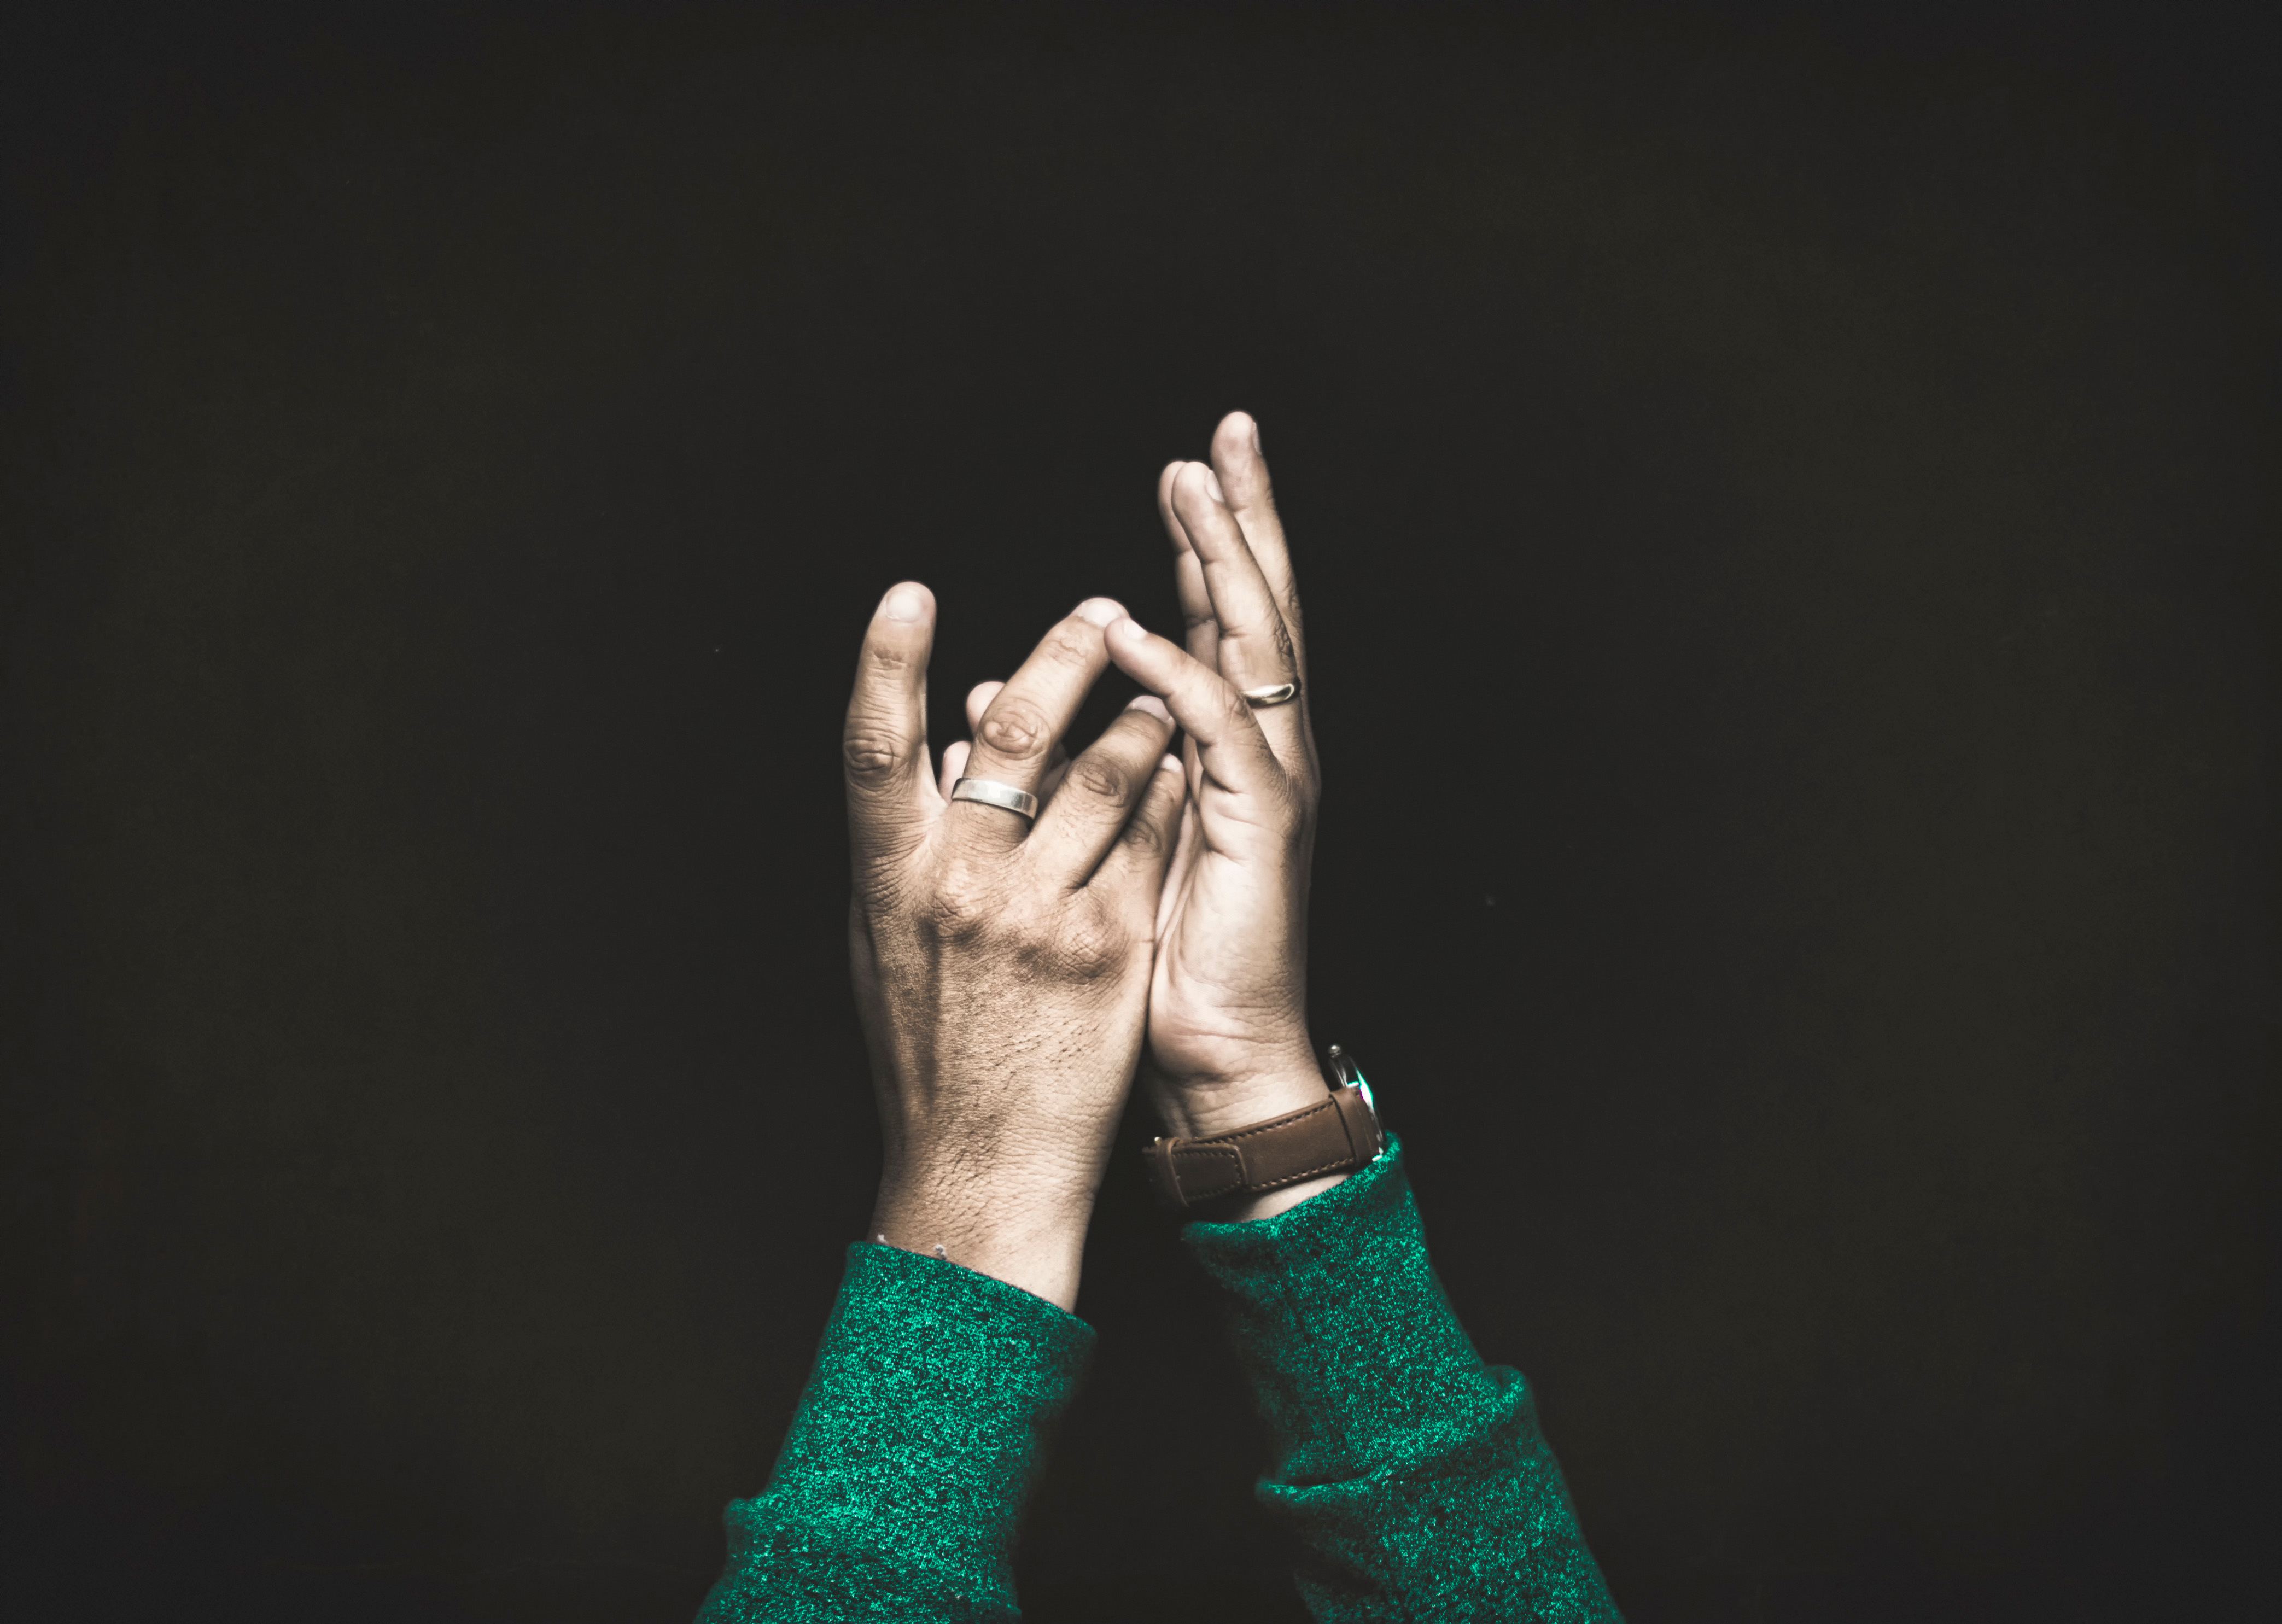 Against a black backdrop, a person's hands reach gracefully toward the sky.